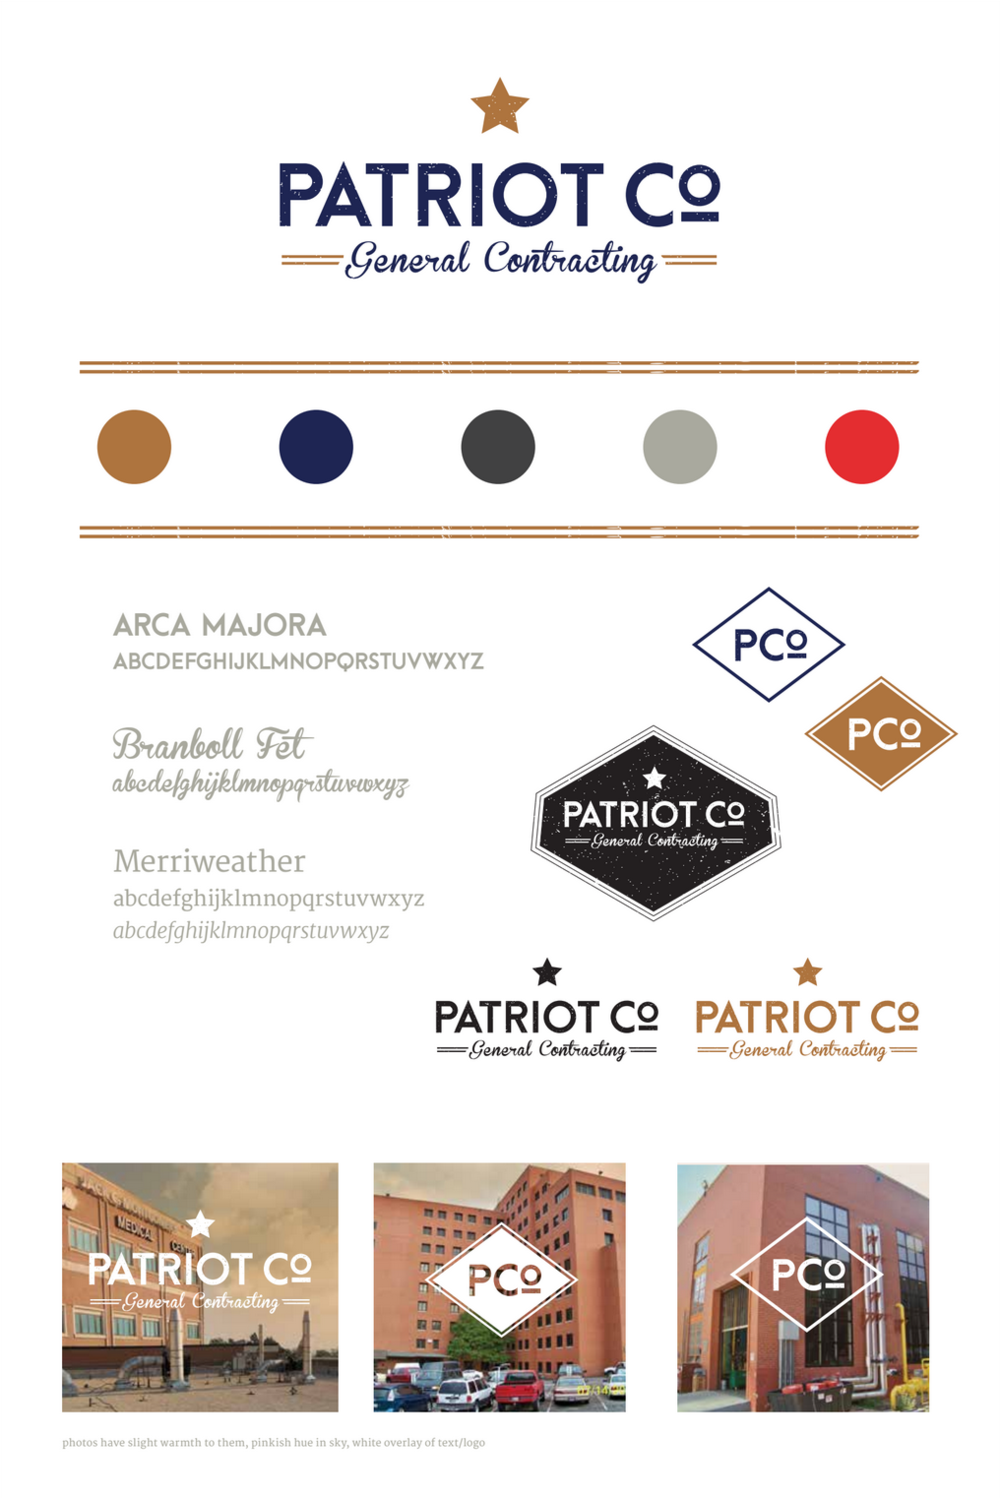 Patriot Co. General Contracting's final Brand Style Board.